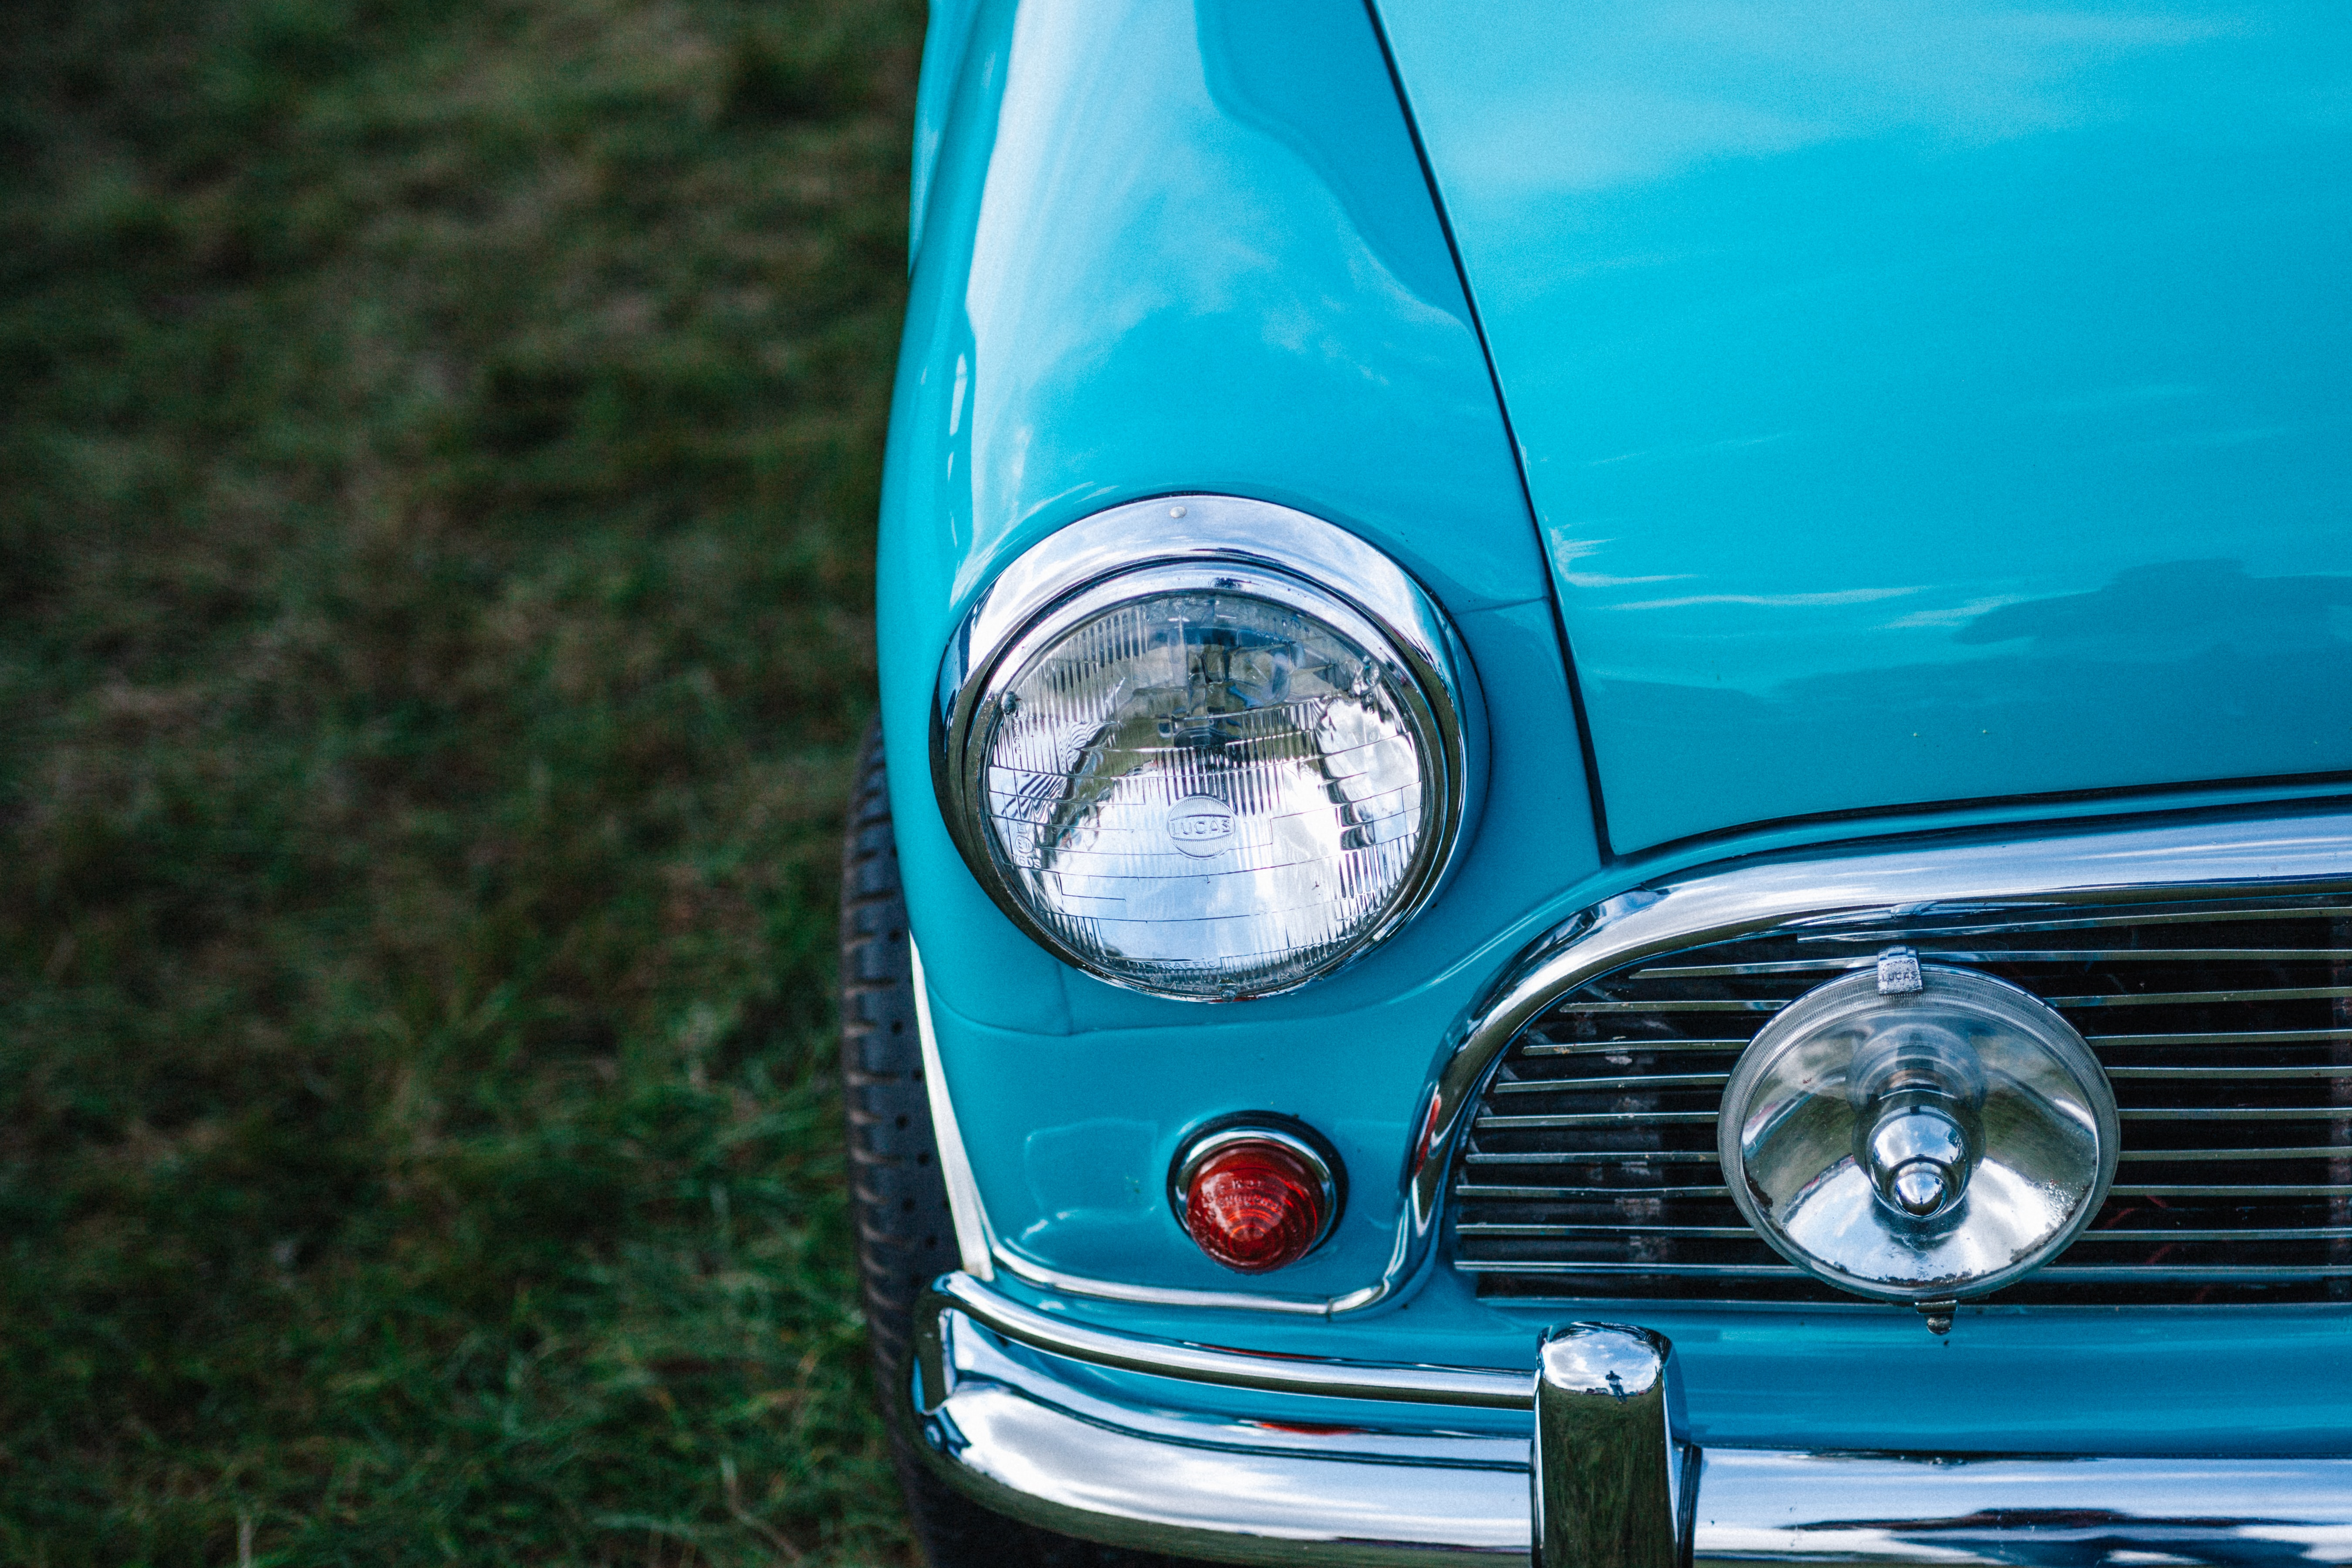 Headlight and hood details on a baby blue vintage car